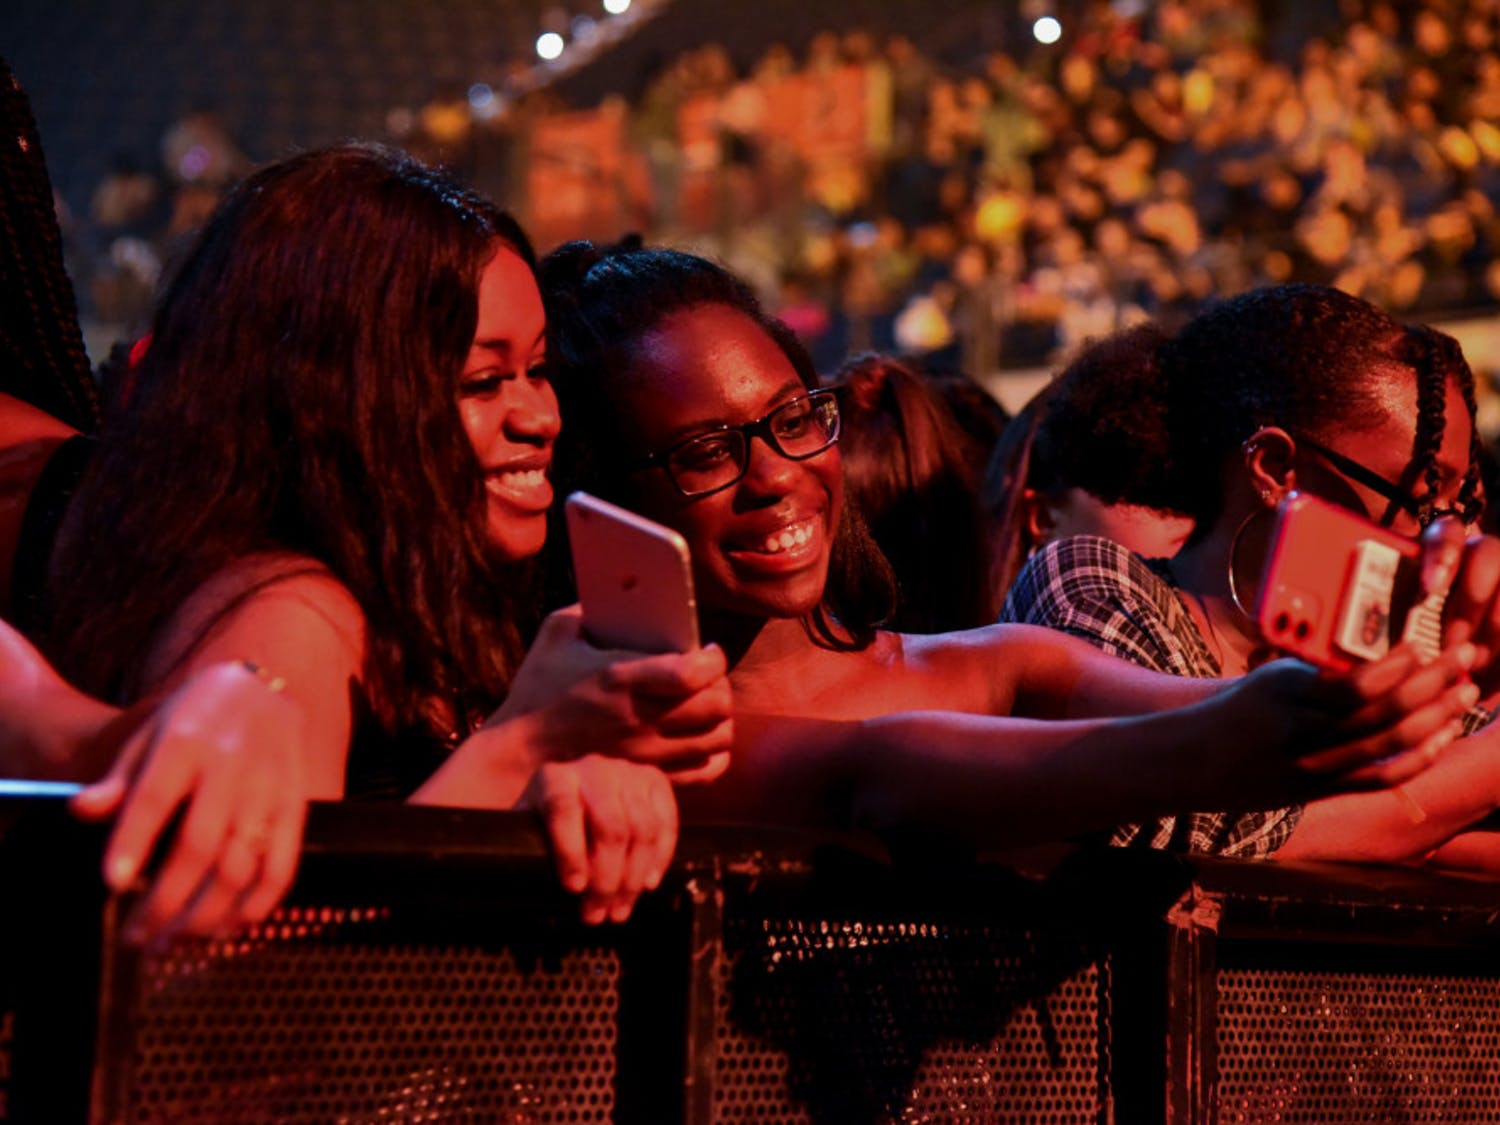 Tatiana Delaleu, a 20-year-old UF microbiology sophomore, takes a selfie with her friend, Jemima Jean Charles, a 20-year-old UF health science sophomore, while they wait for Tory Lanez to perform at the O'Connell Center Monday night.